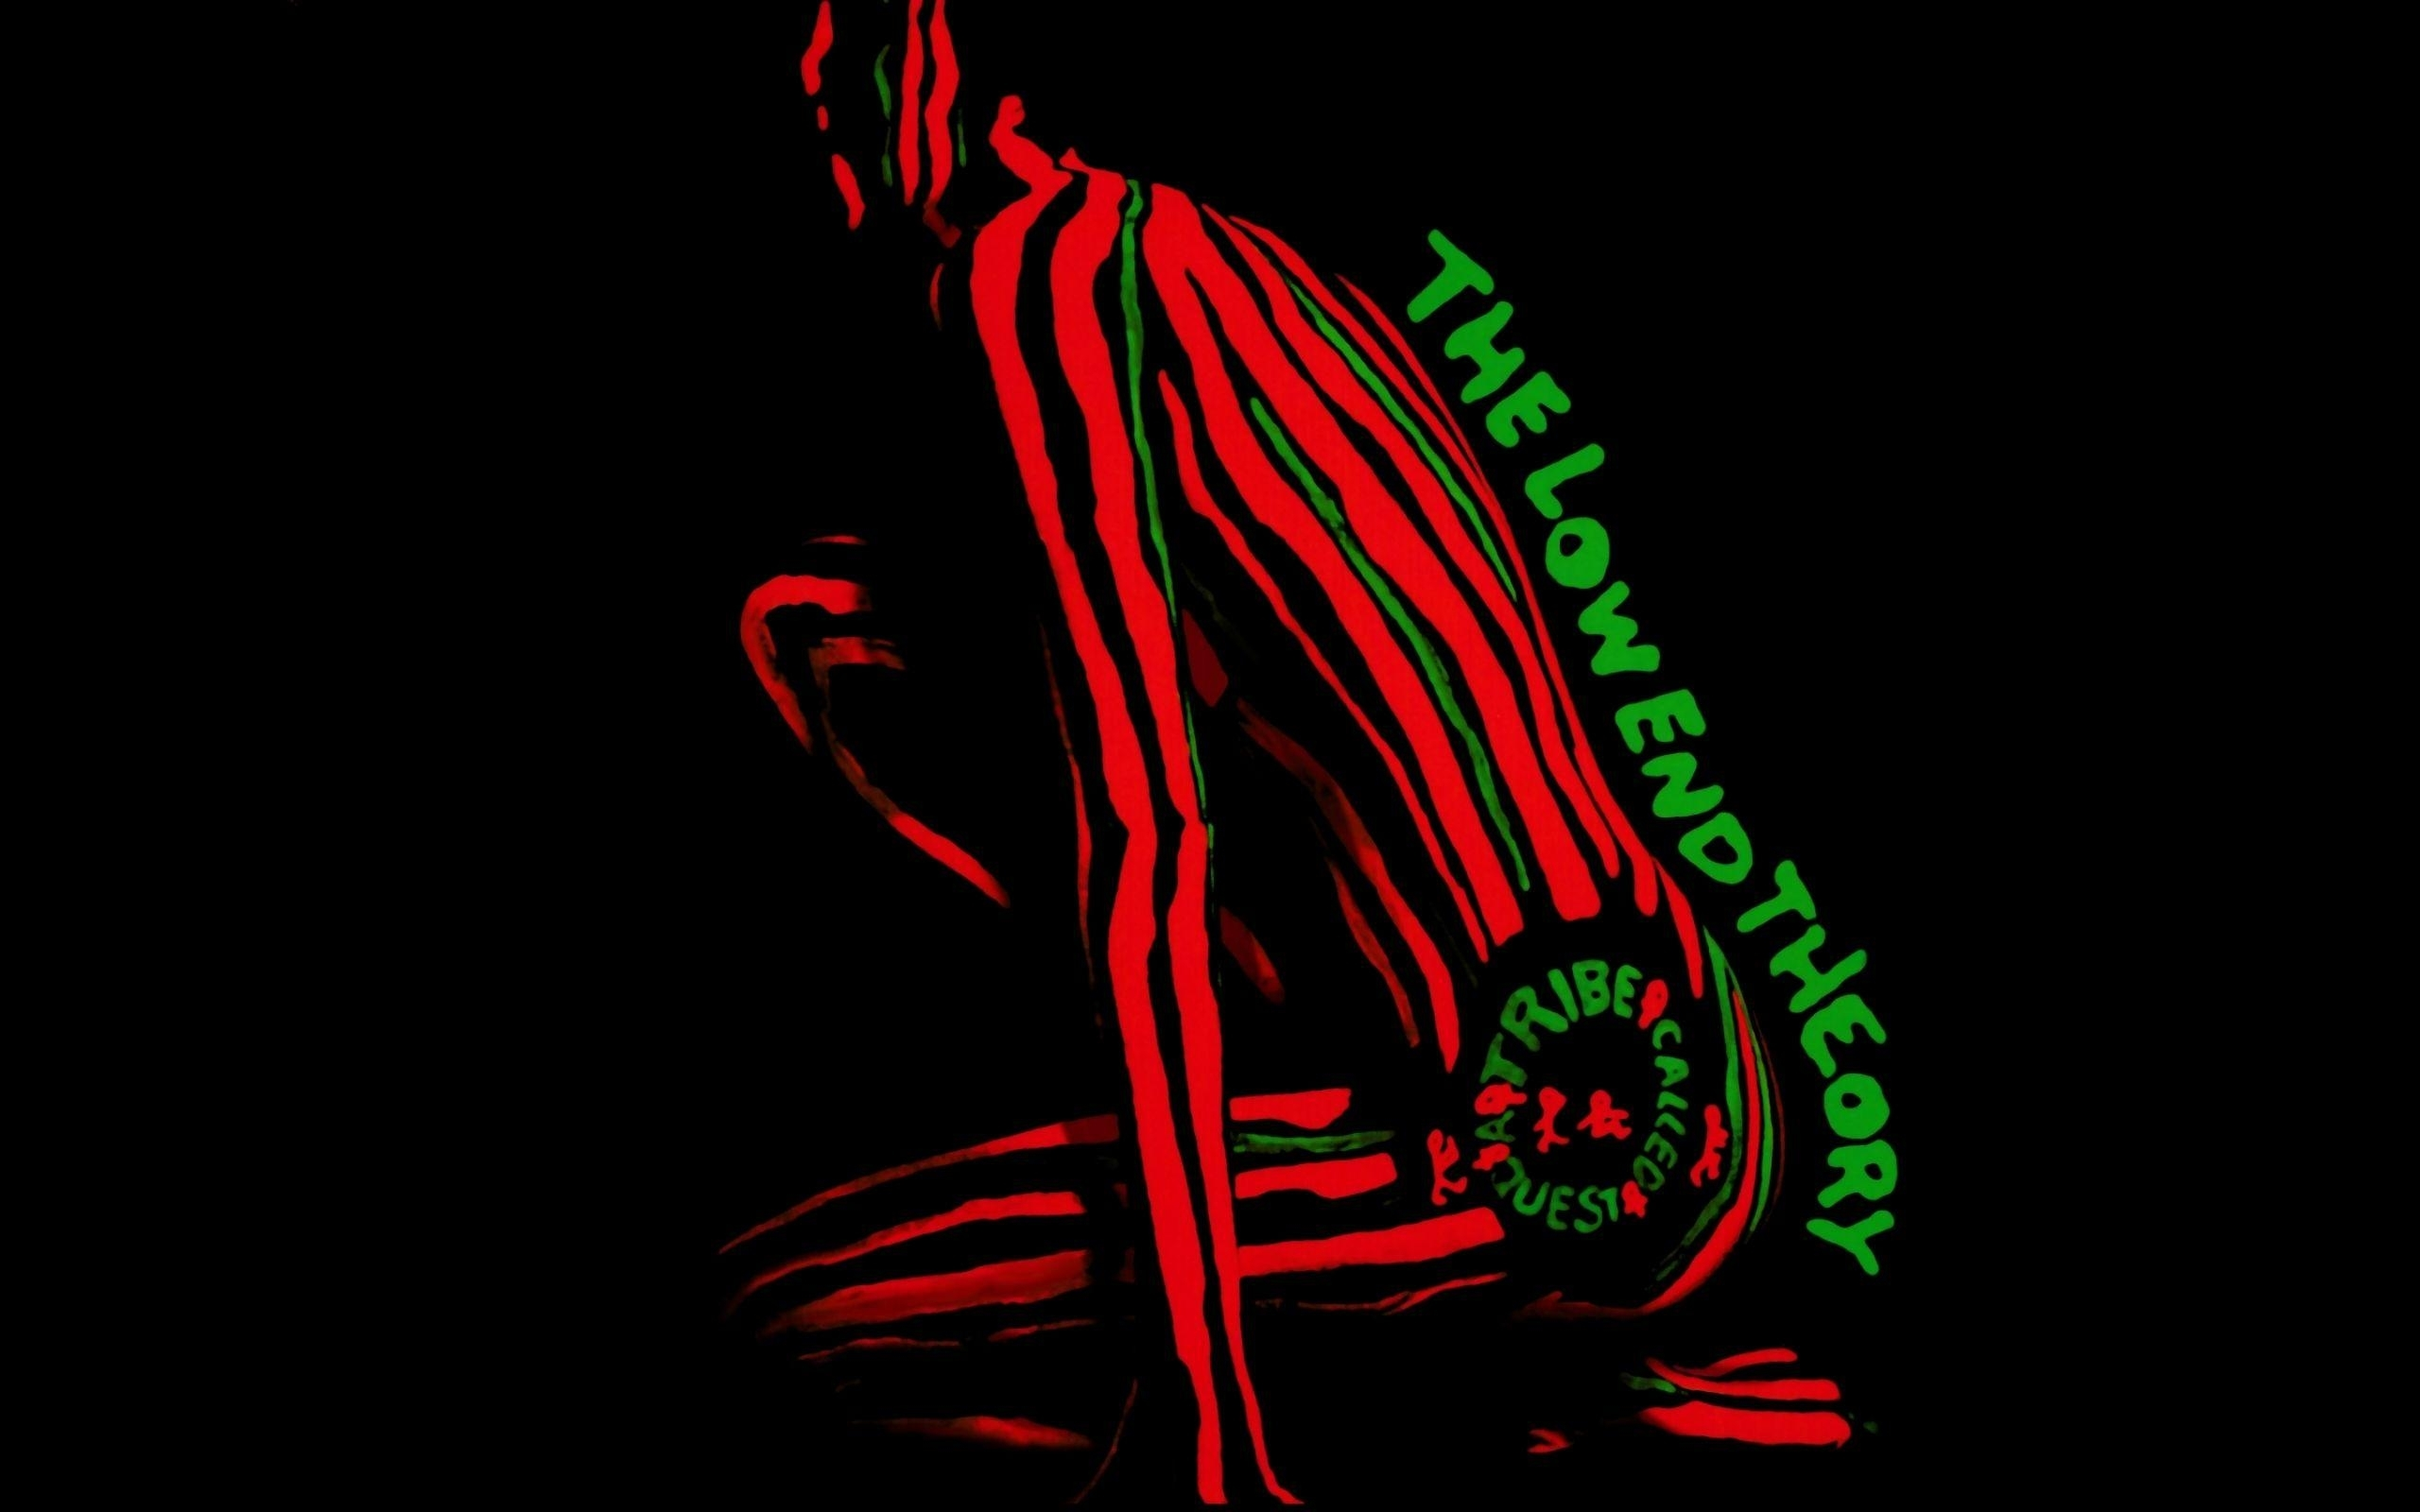 a tribe called quest wallpapers - wallpaper cave